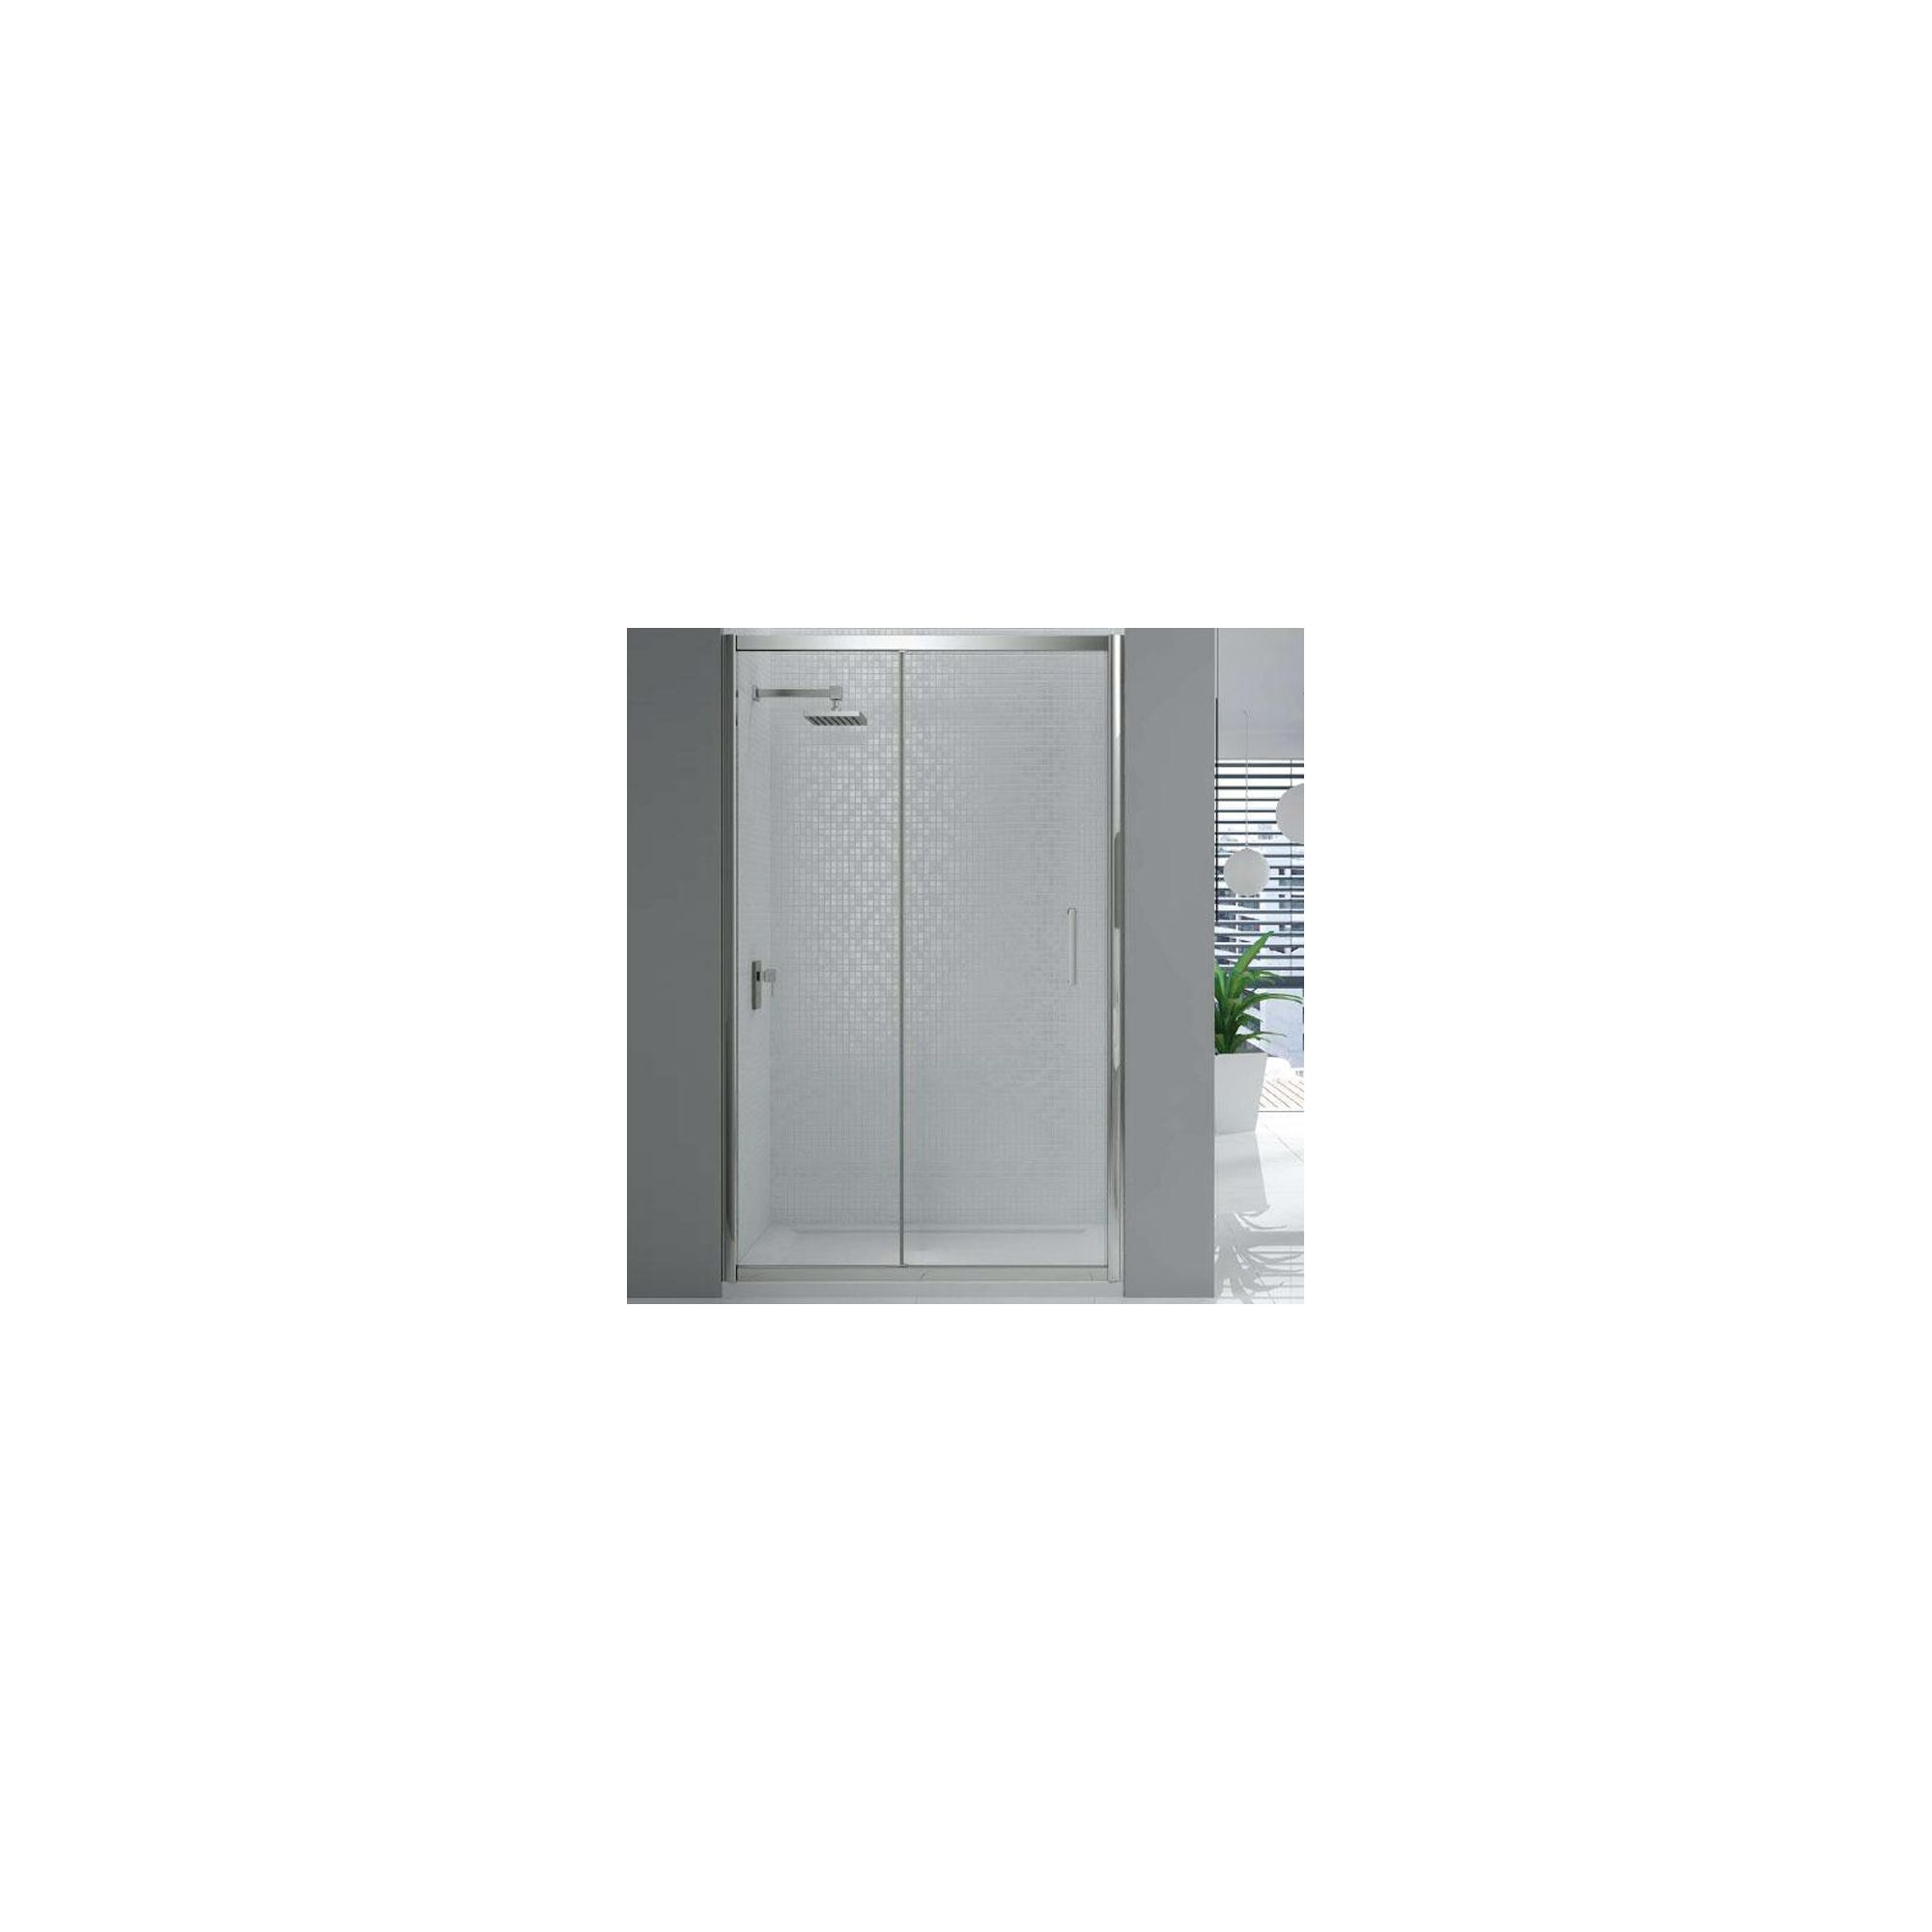 Merlyn Vivid Six Sliding Shower Door, 1400mm Wide, 6mm Glass at Tesco Direct